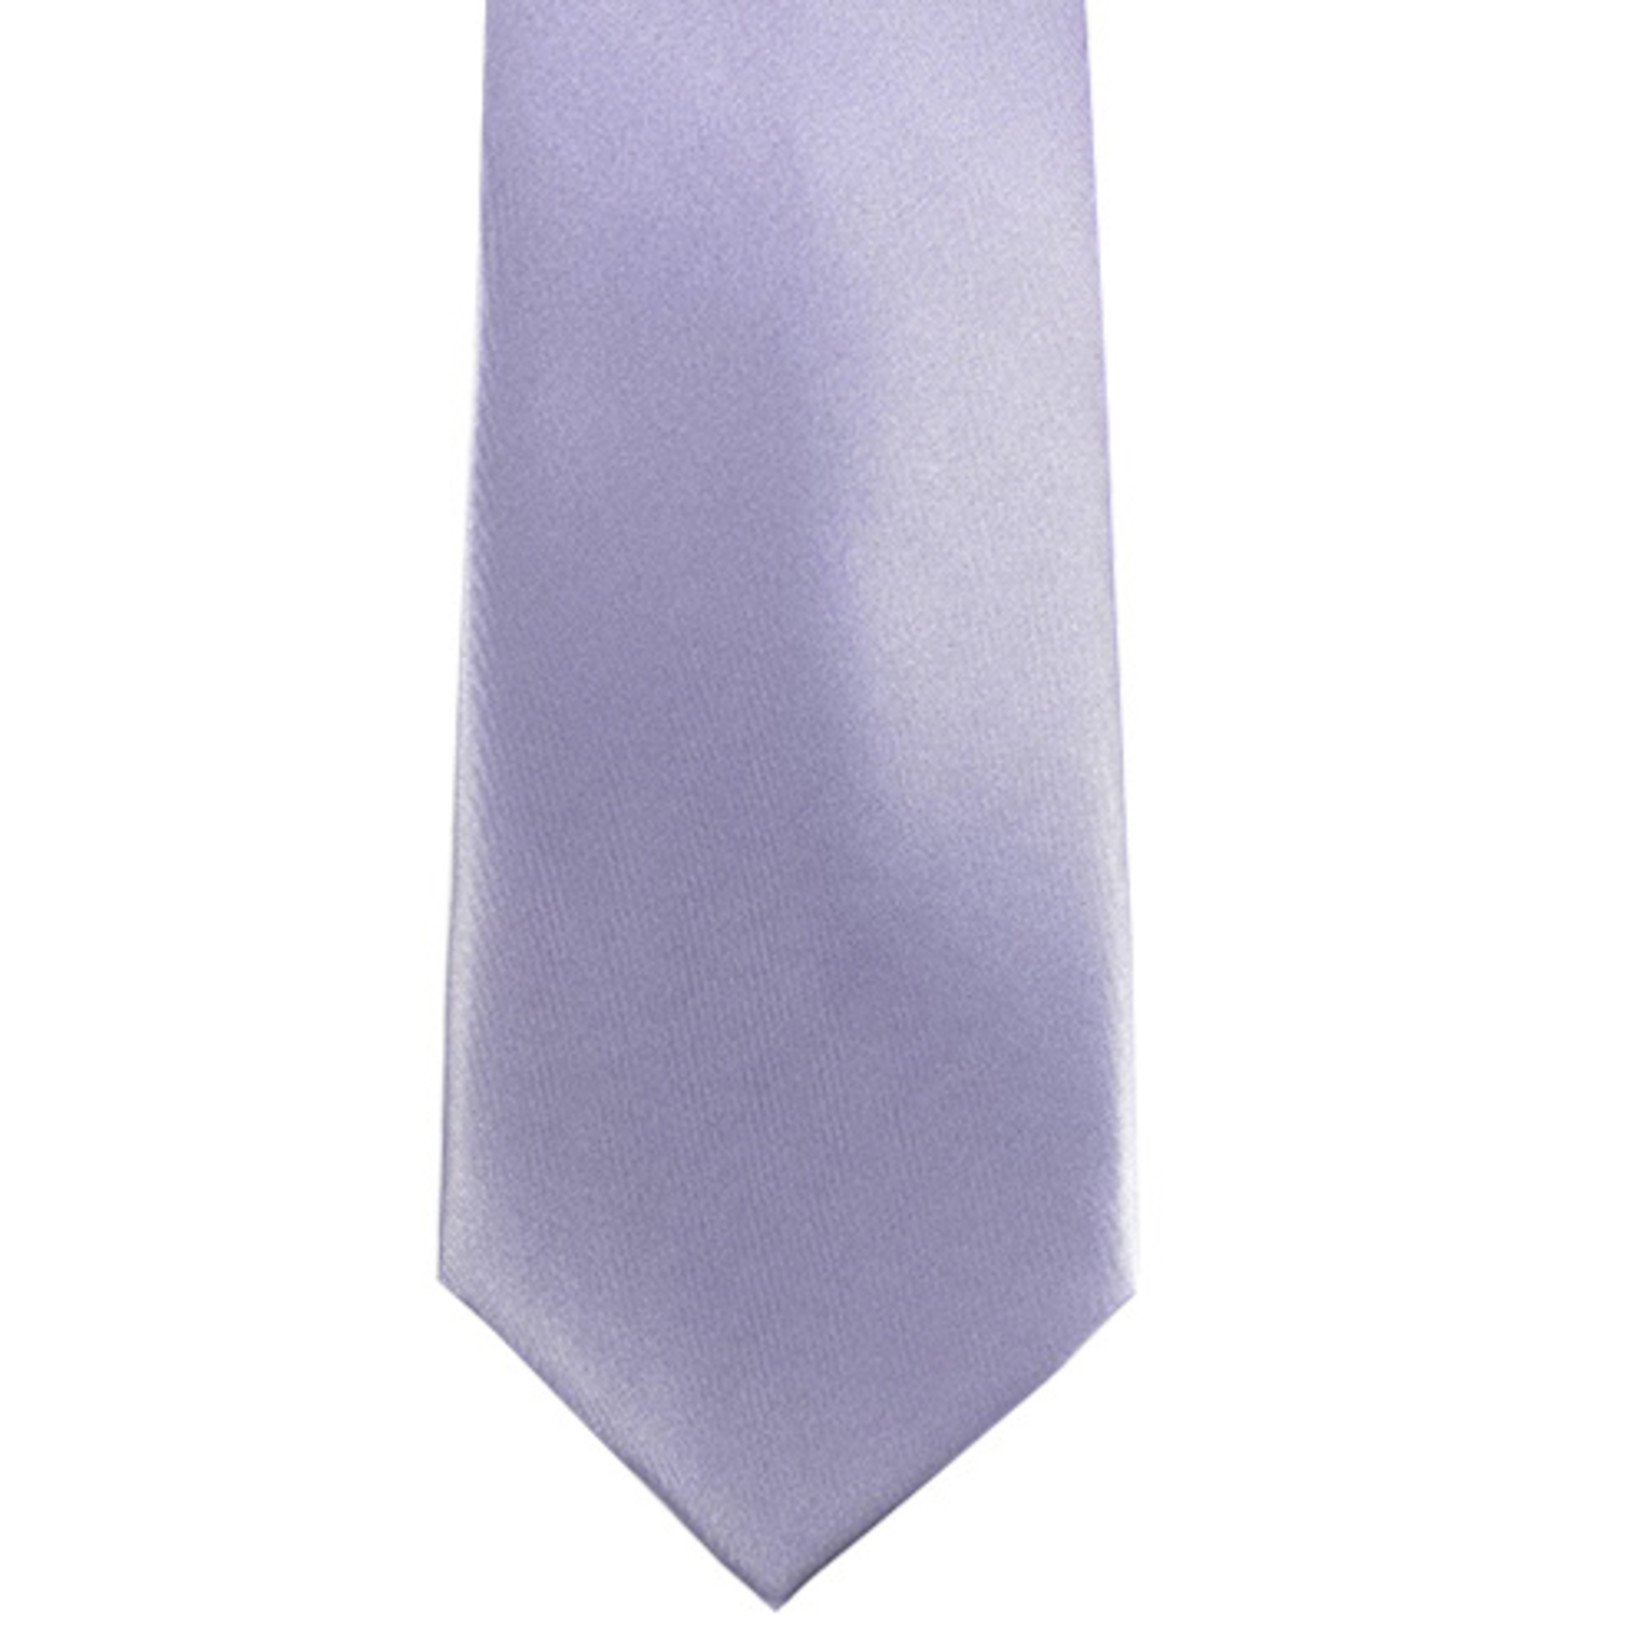 Knotz M100-48 Solid Light Lilac Tie